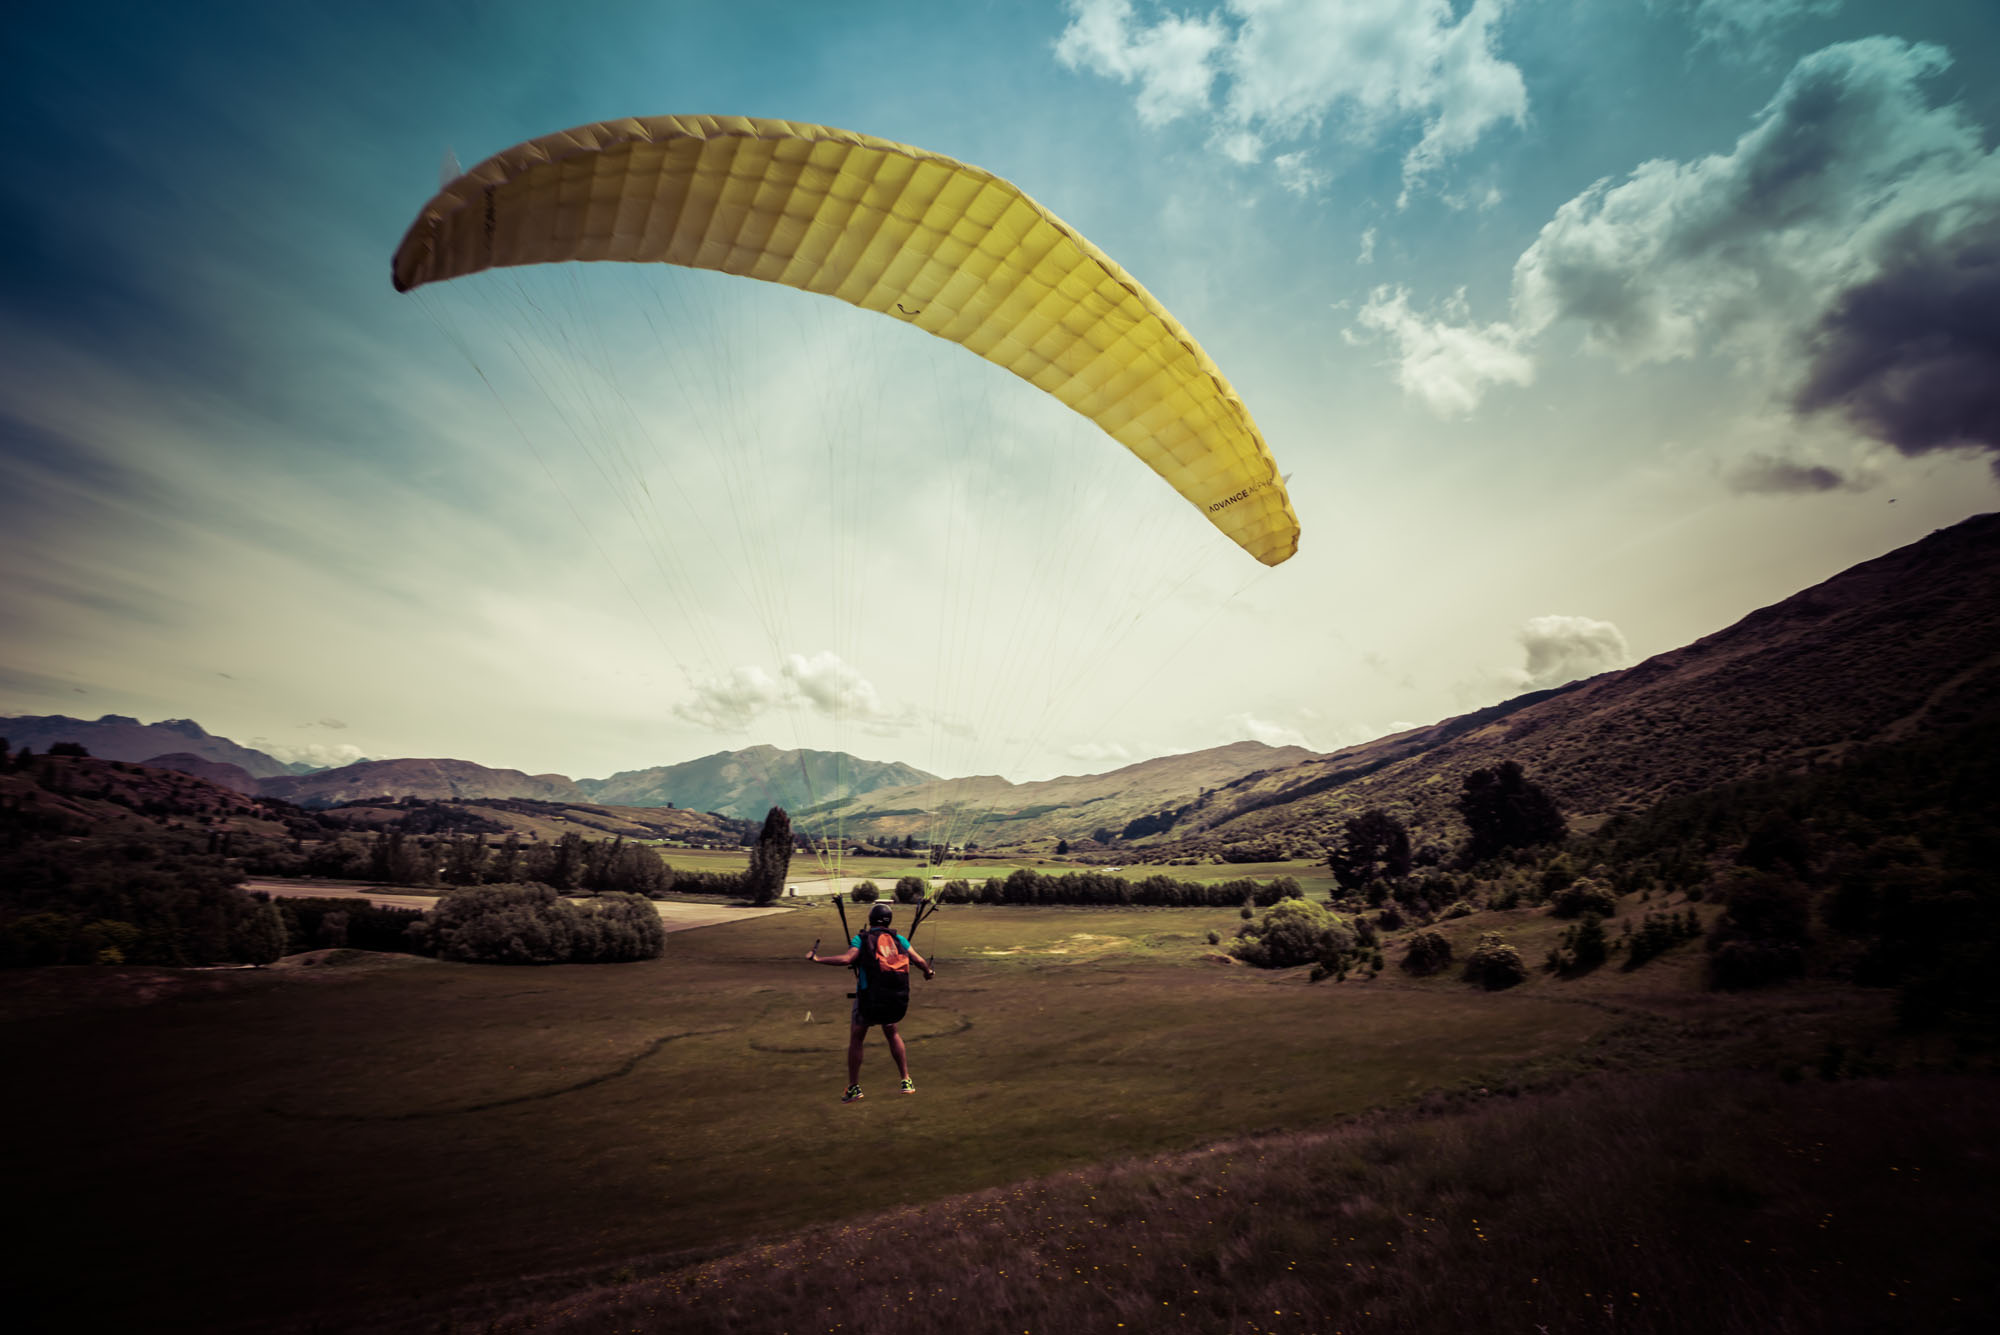 Intro Day Course - Infinity Paragliding 15